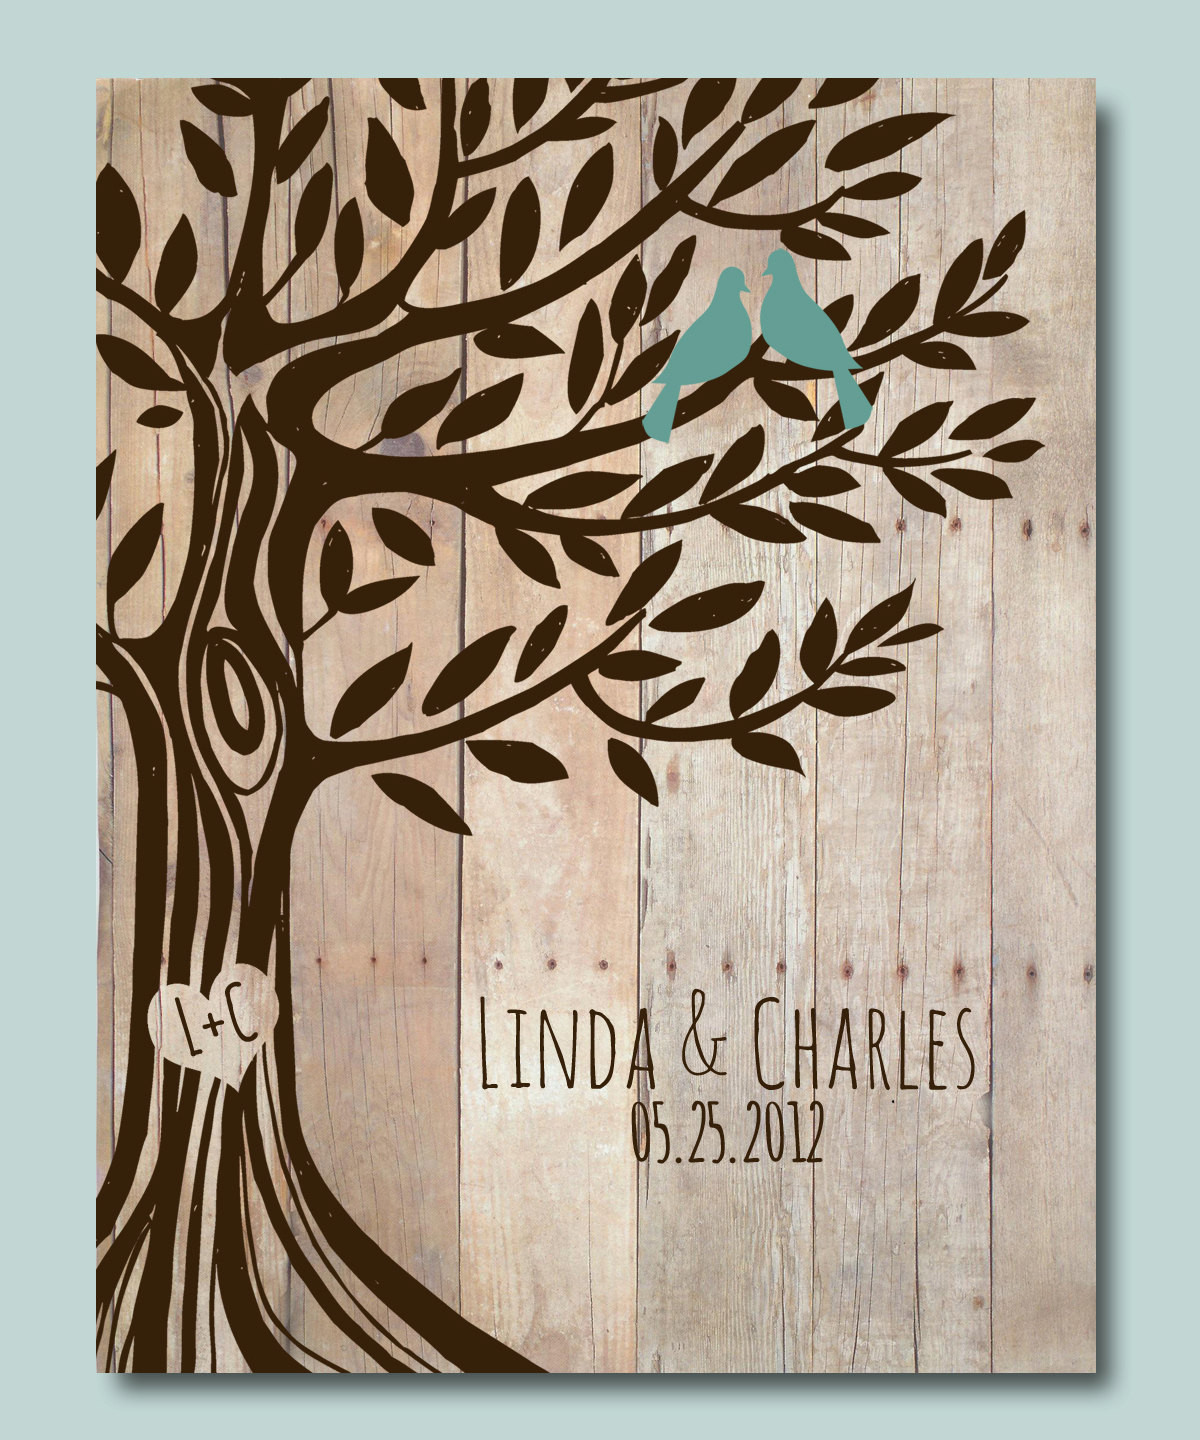 Best ideas about Wedding Gift Engraving Ideas . Save or Pin Personalized Wedding Gift Love Birds Tree Engagement t Now.